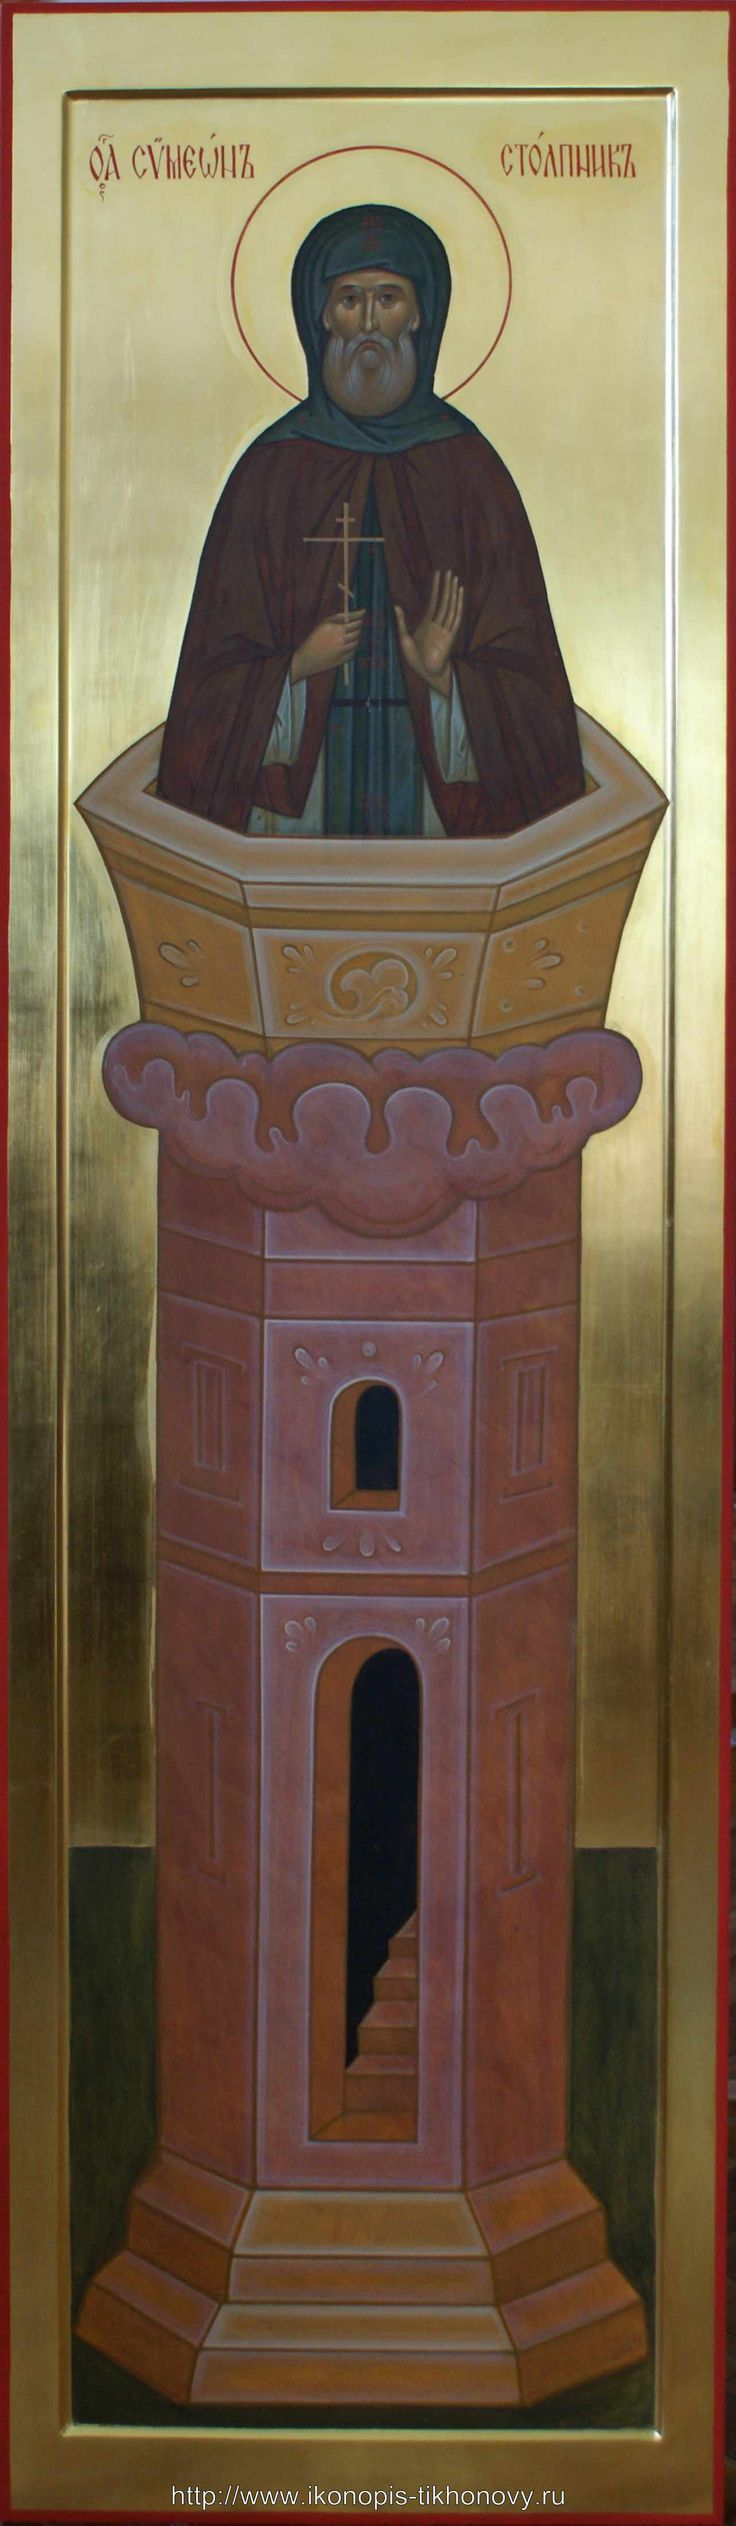 St Symeon the Stylite  / Мерная икона